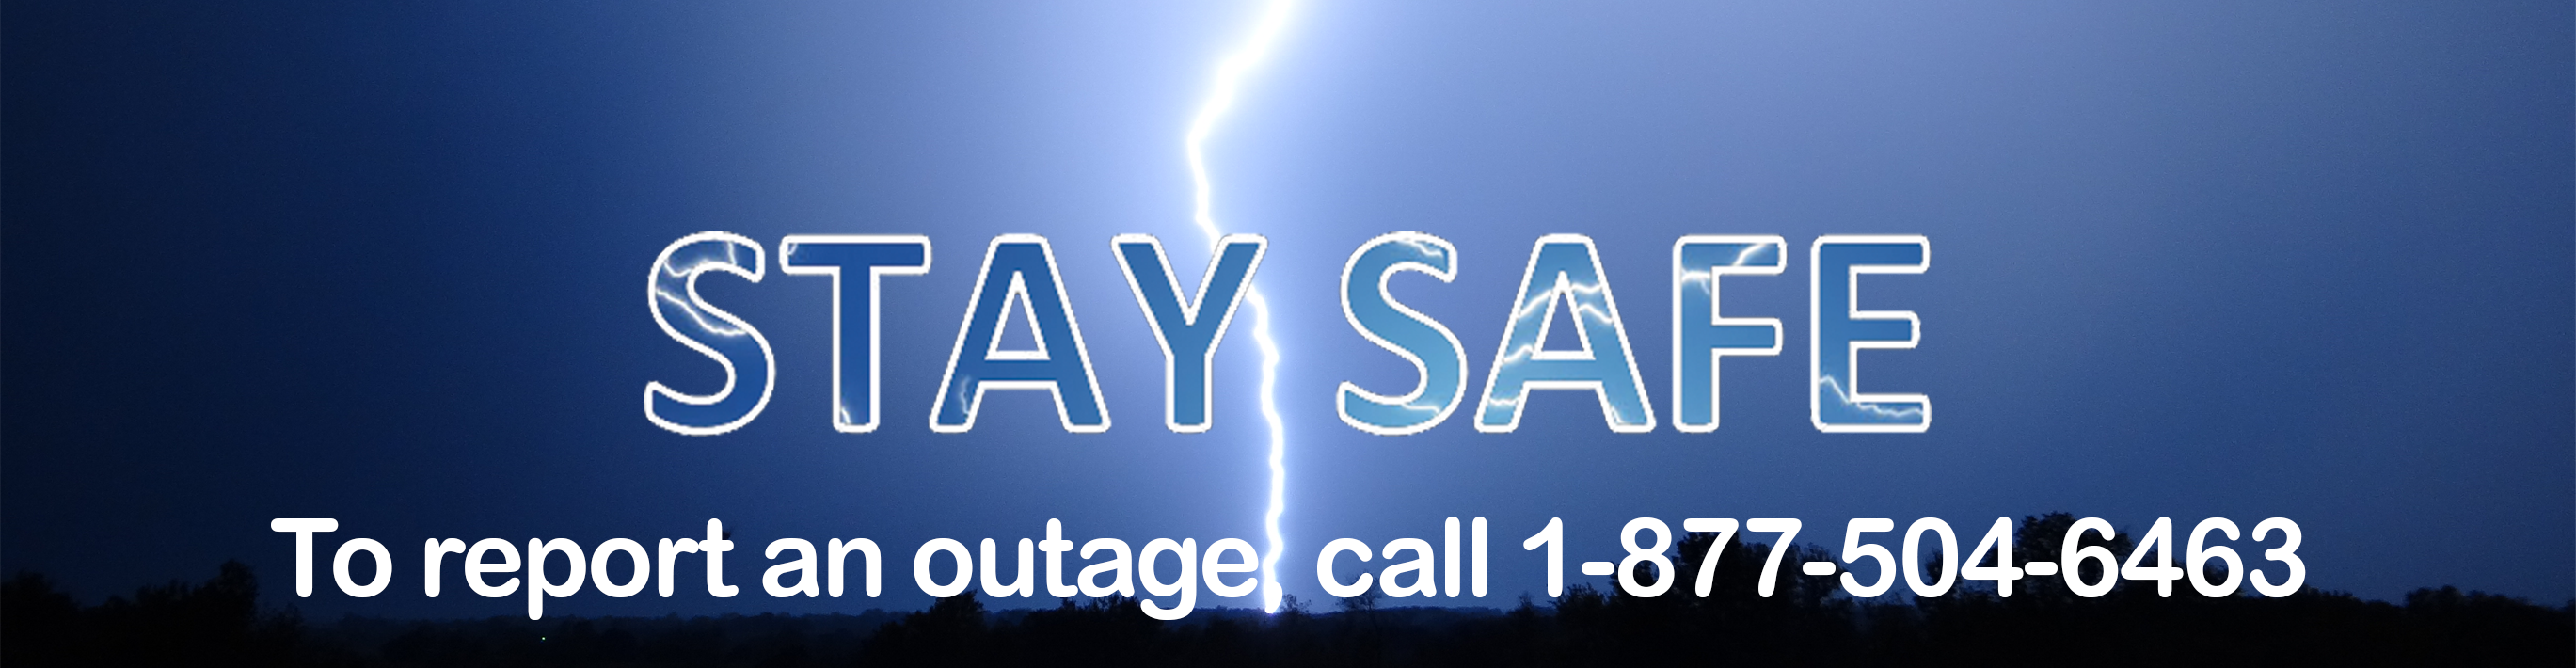 Storm Center - to report an outage, call 1-877-504-6463